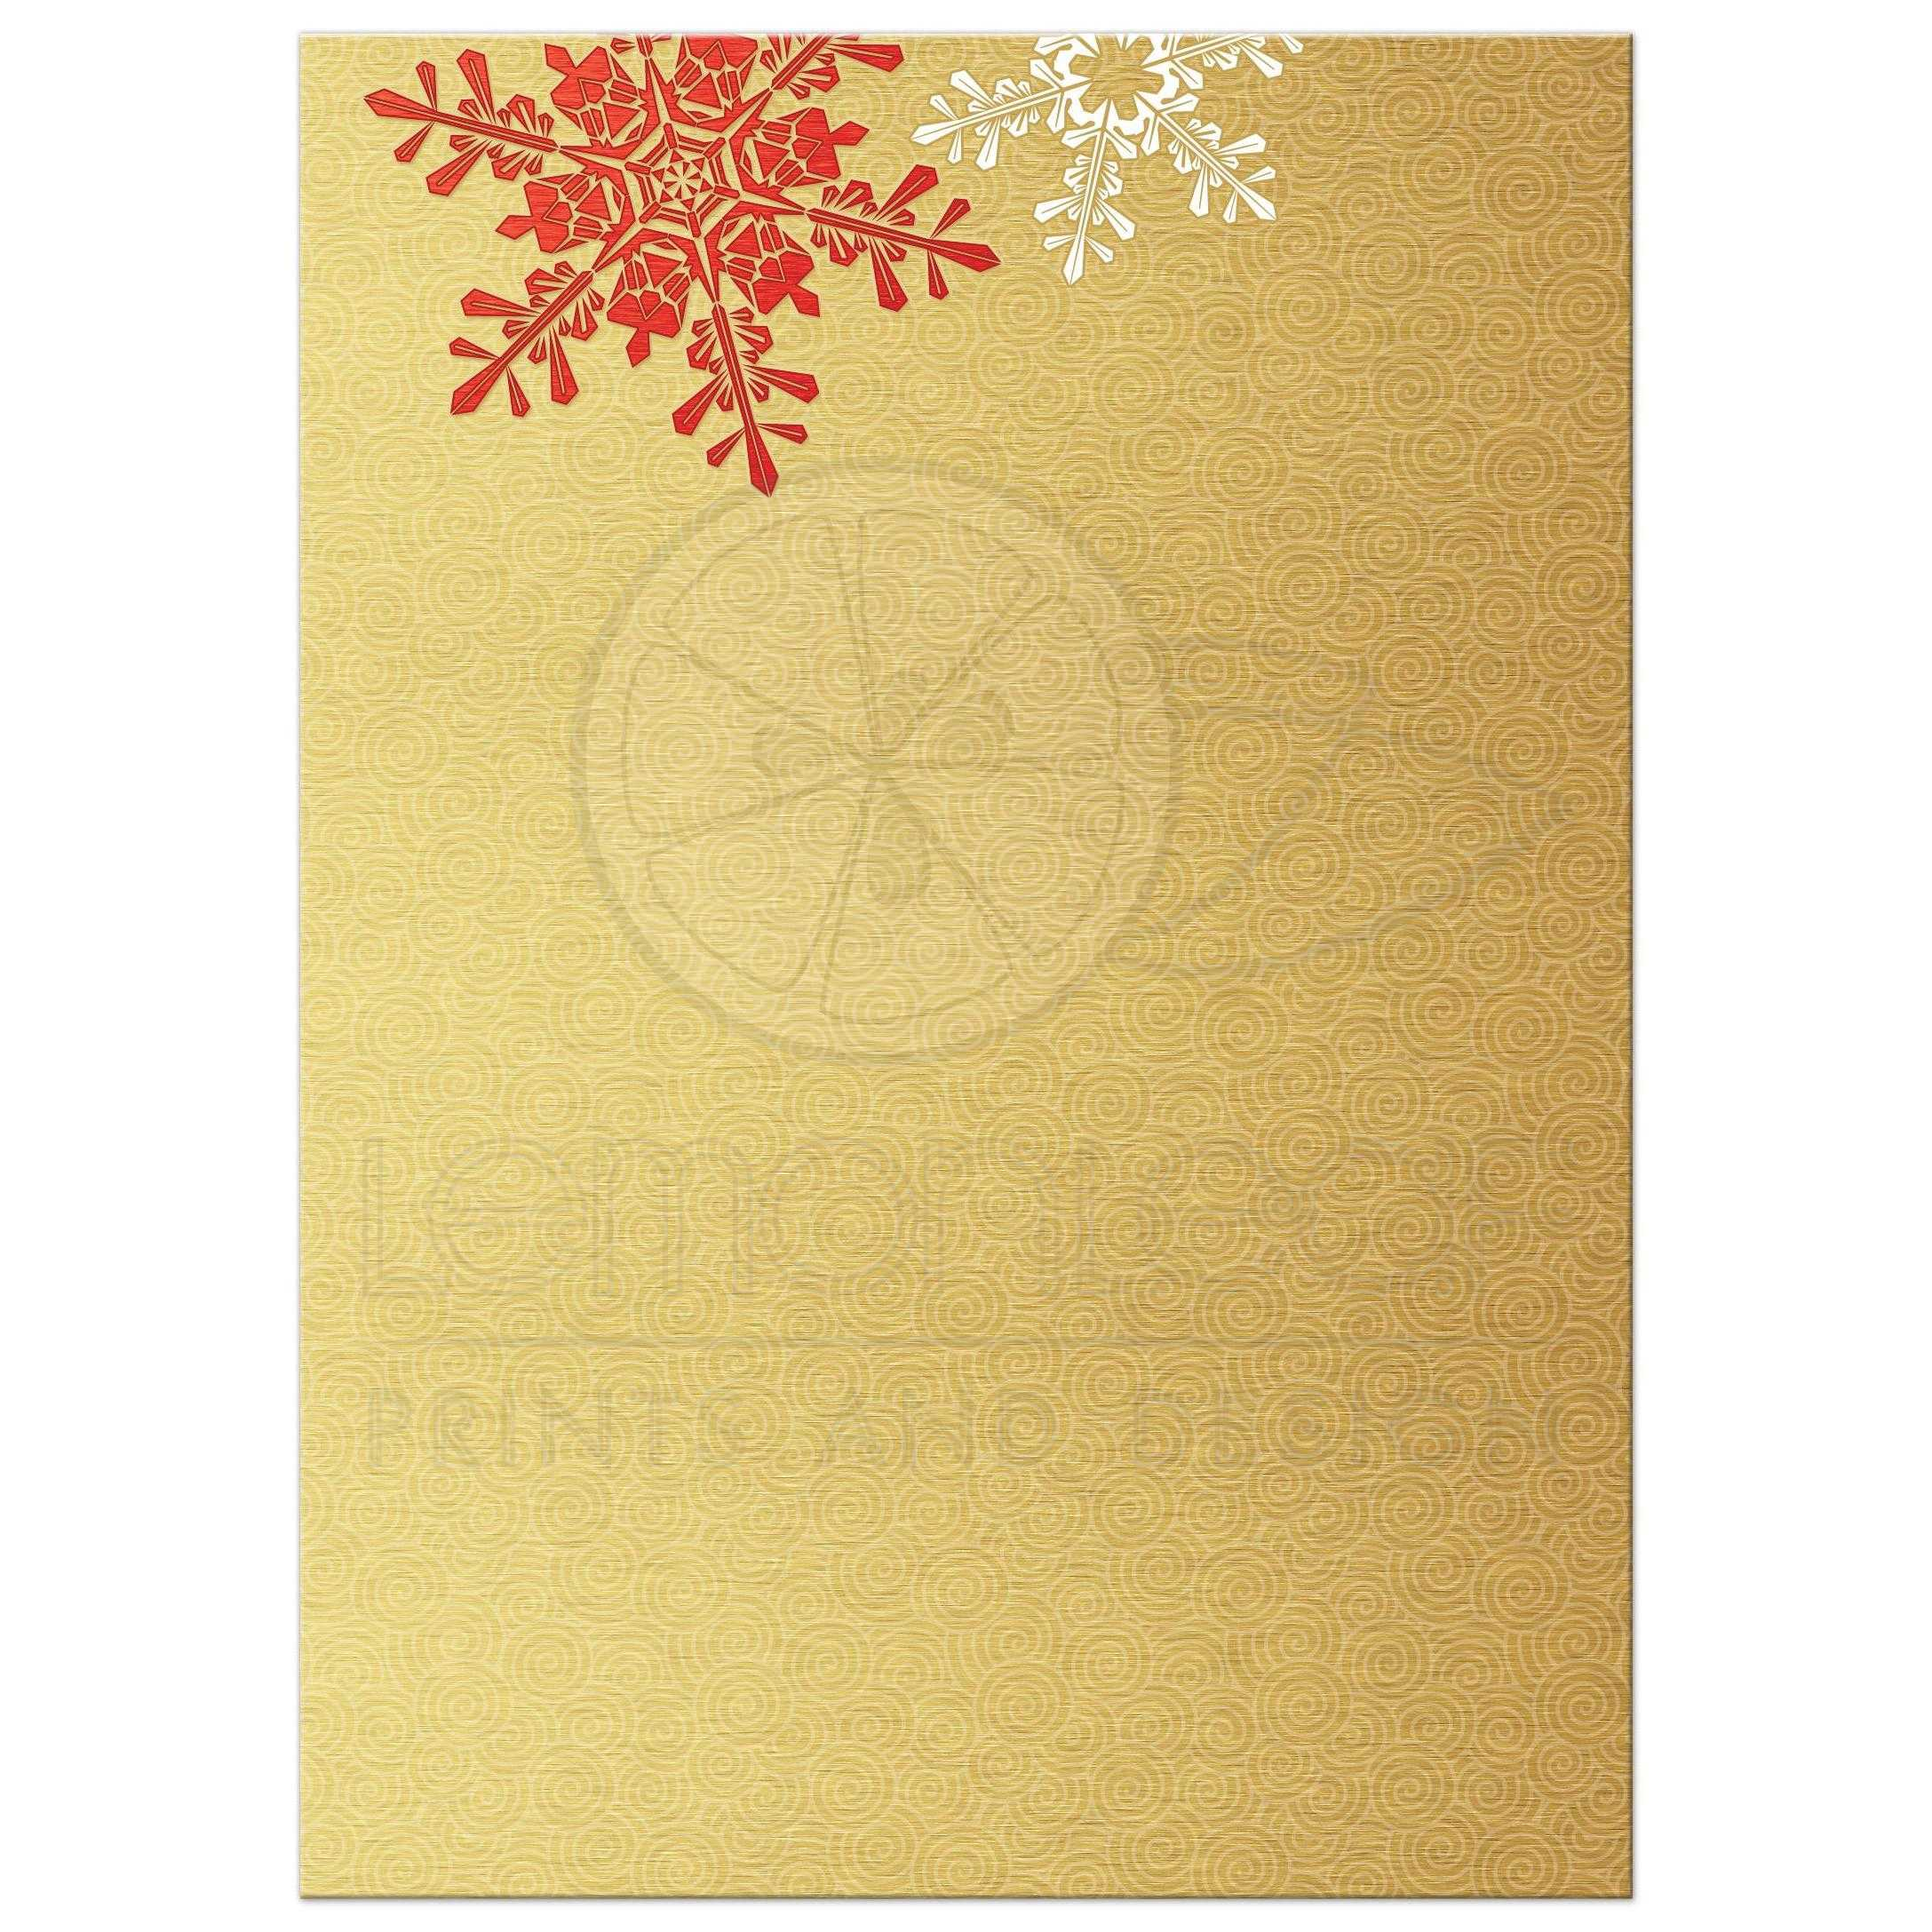 ... Red, Gold, And White Elegant Snowflake Winter Wedding Invitation Back  ...